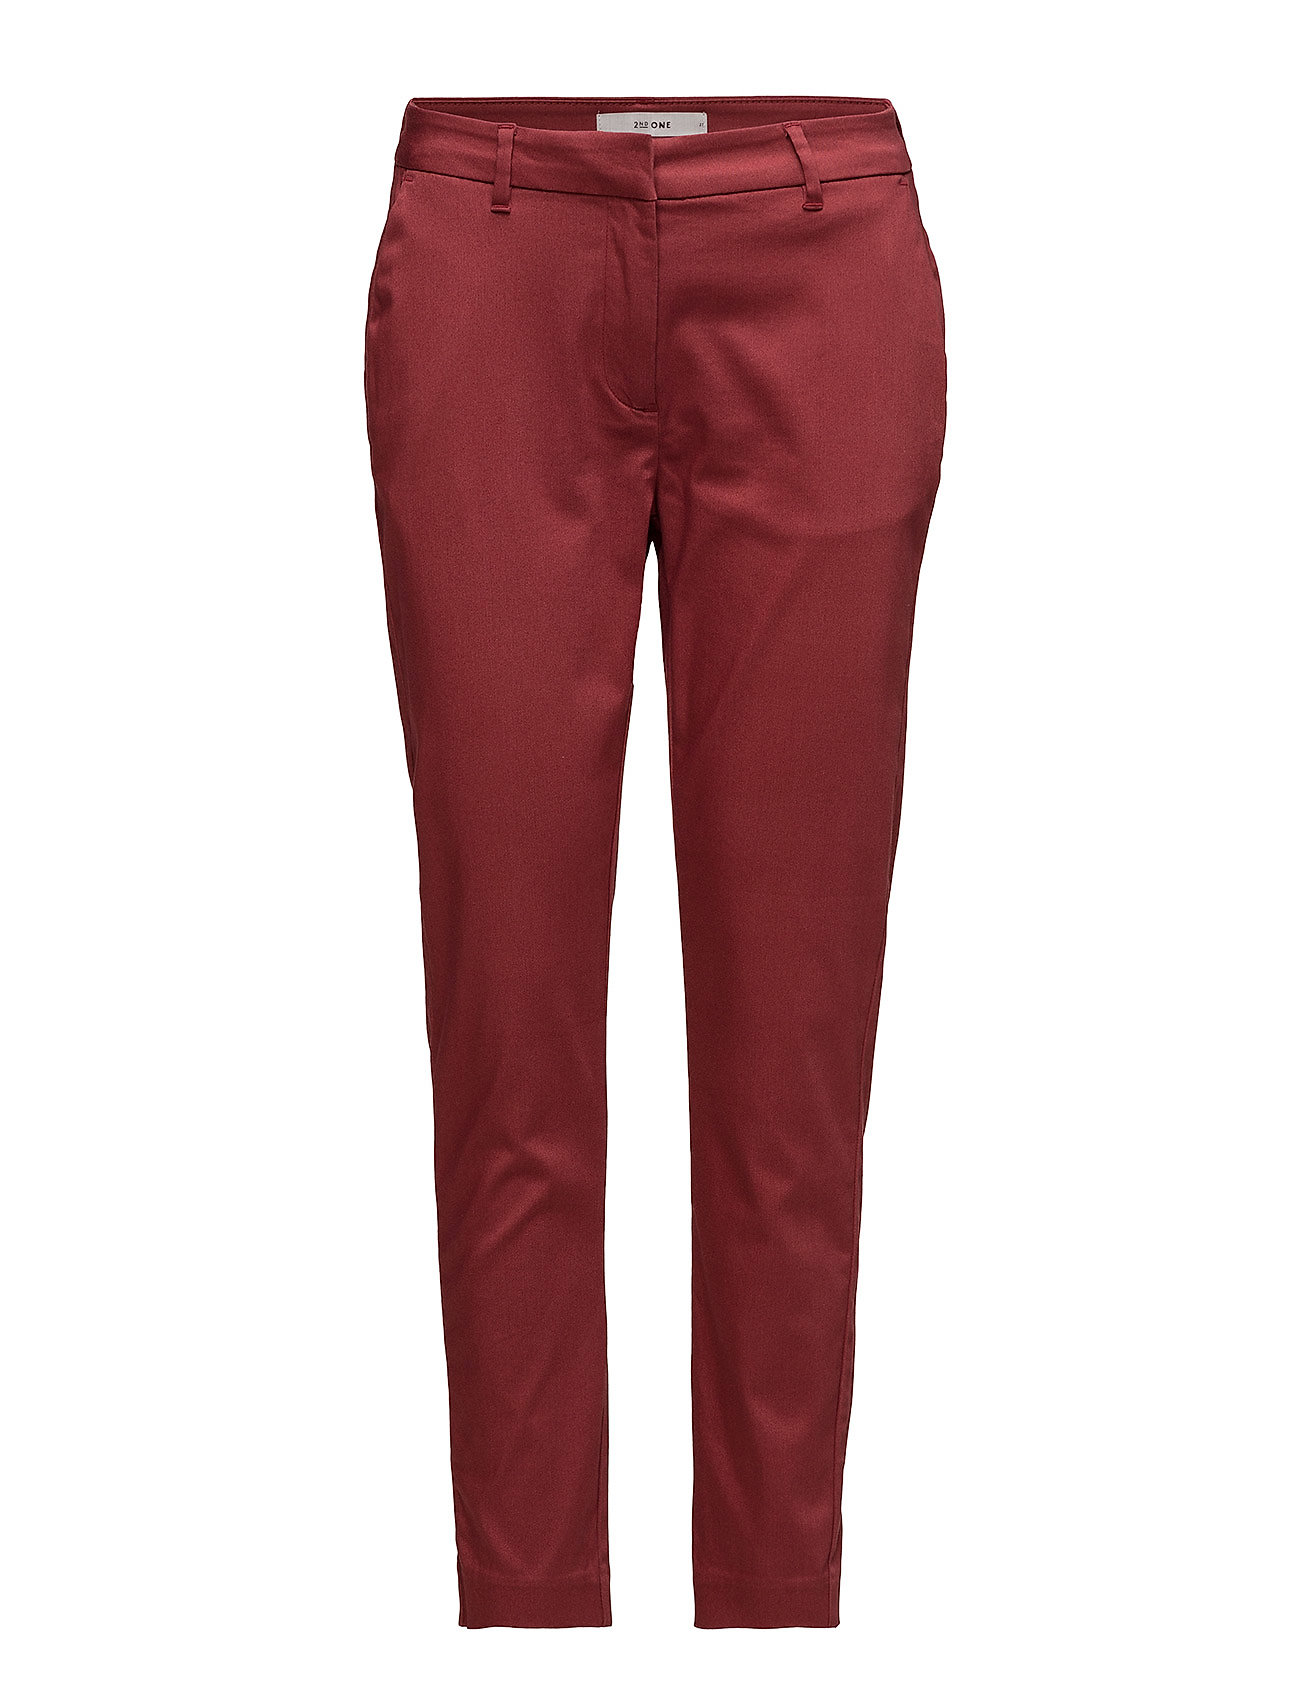 2nd One Carine 065 Pants - EARTH RED